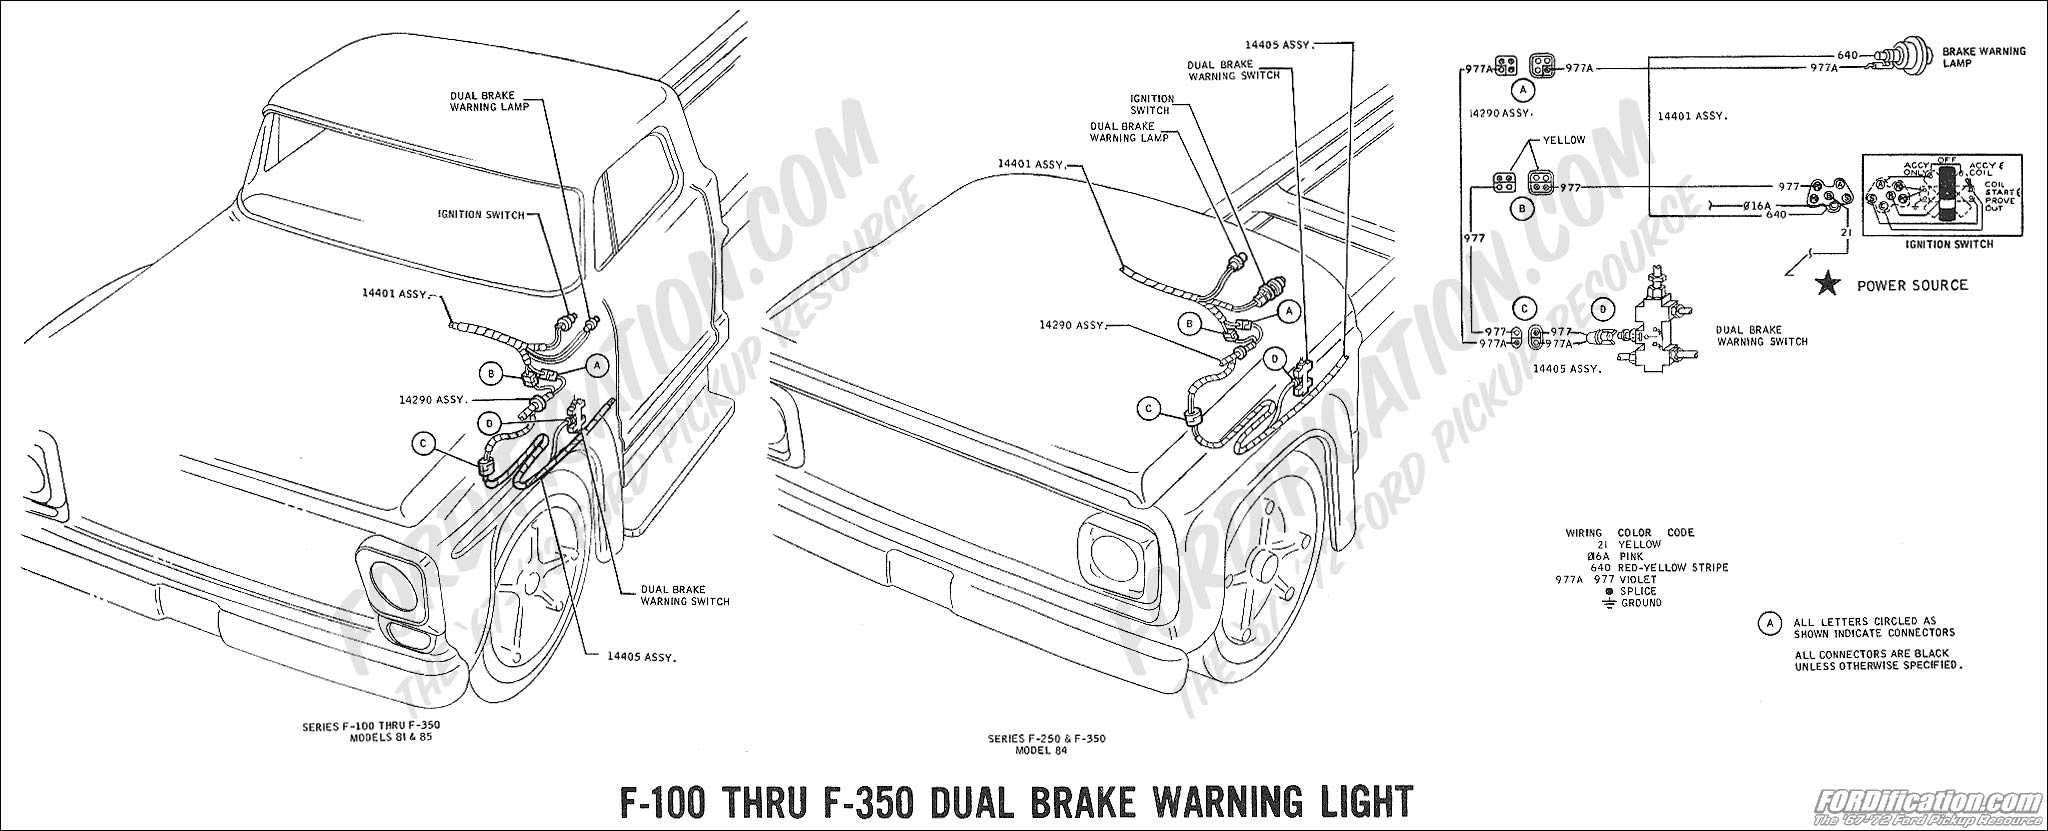 tractor warning light wiring diagrams